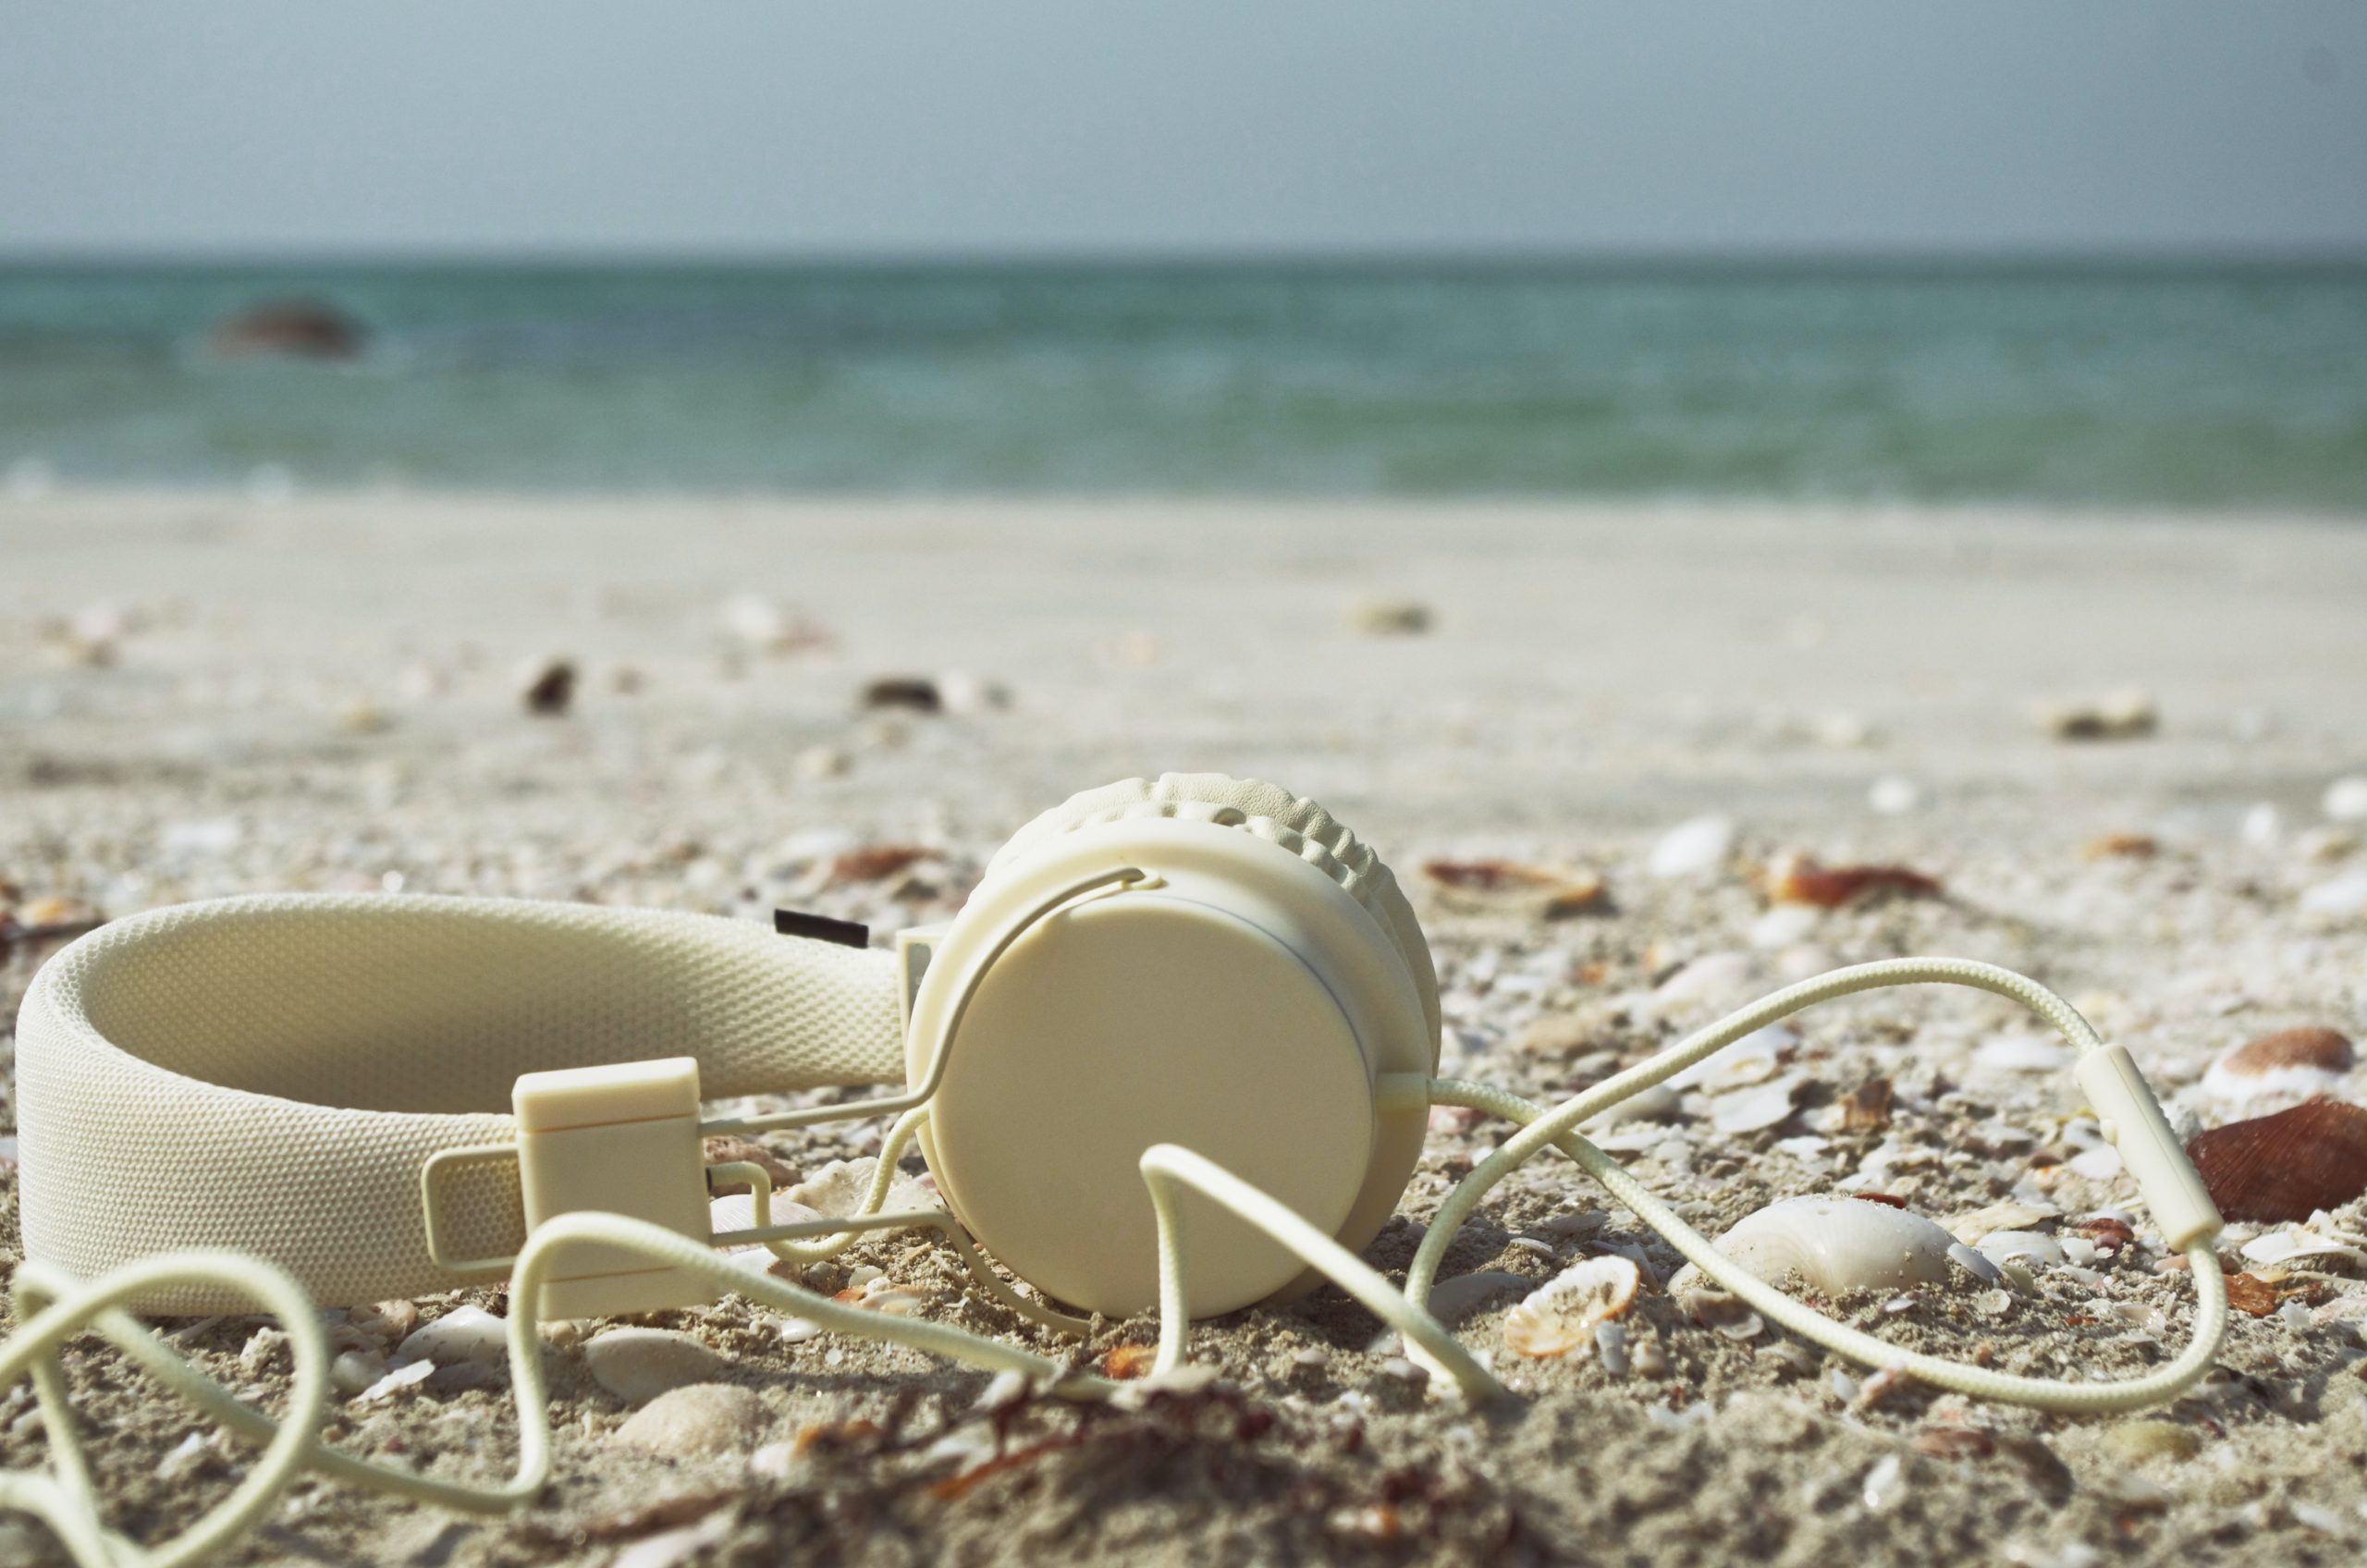 white plastic cup on white sand beach during daytime